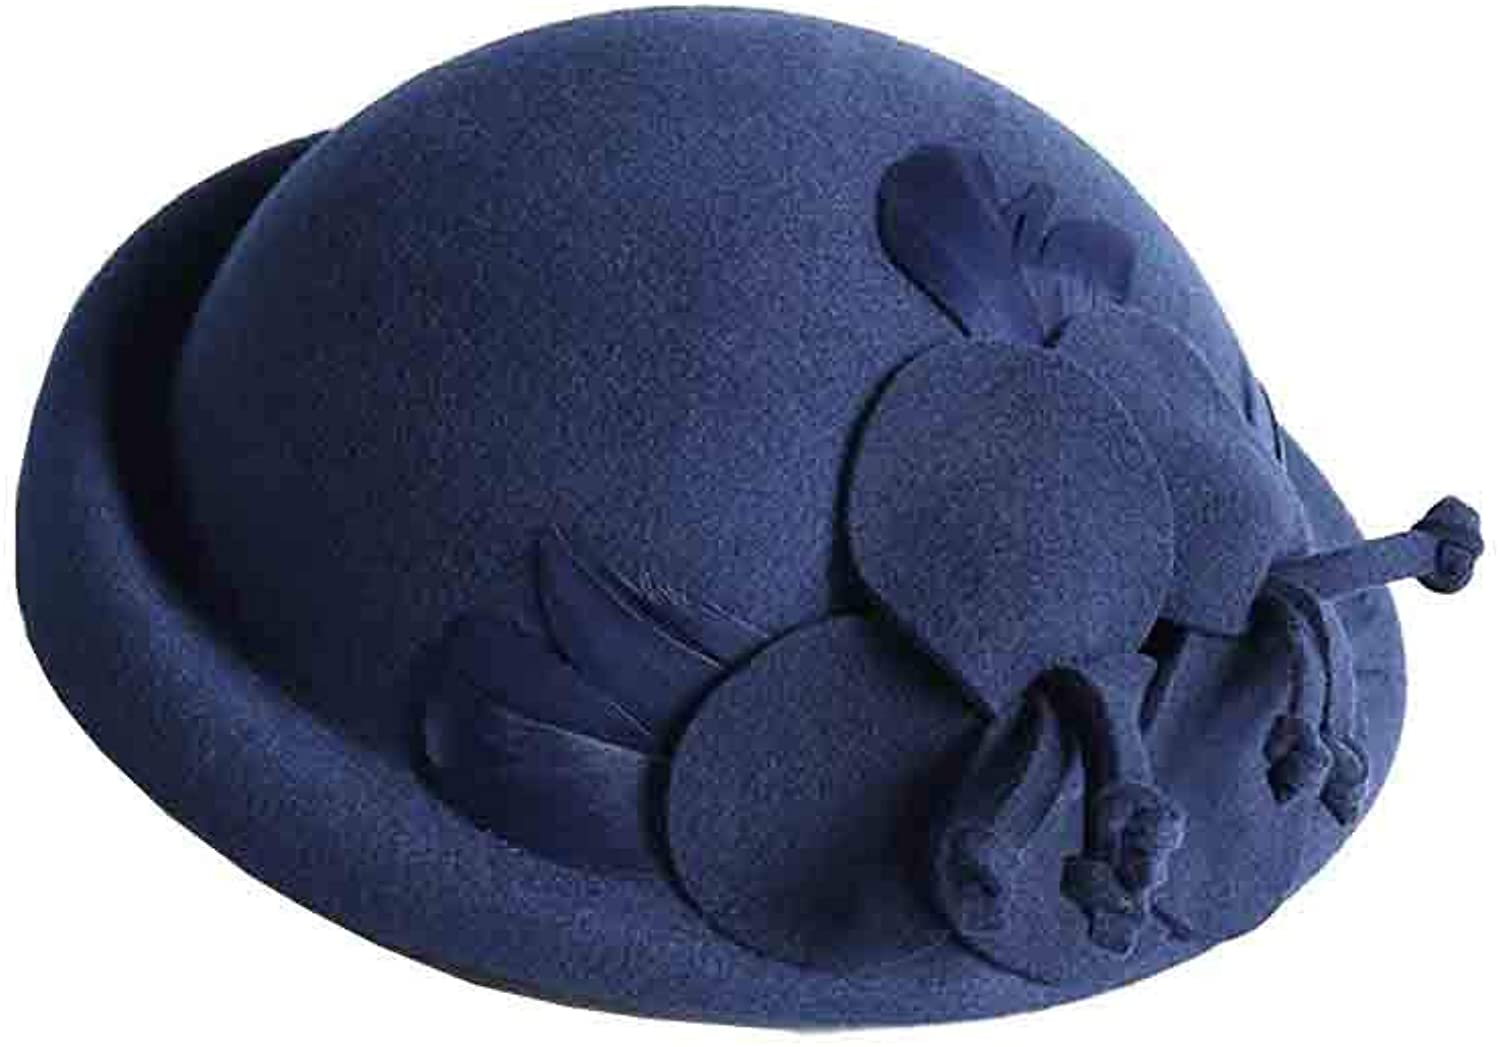 SUNNY Plain Small Topper Beret Hat ThreeDimensional Flower Feather Winter Autumn Women   Adjustable (color   Navy bluee)